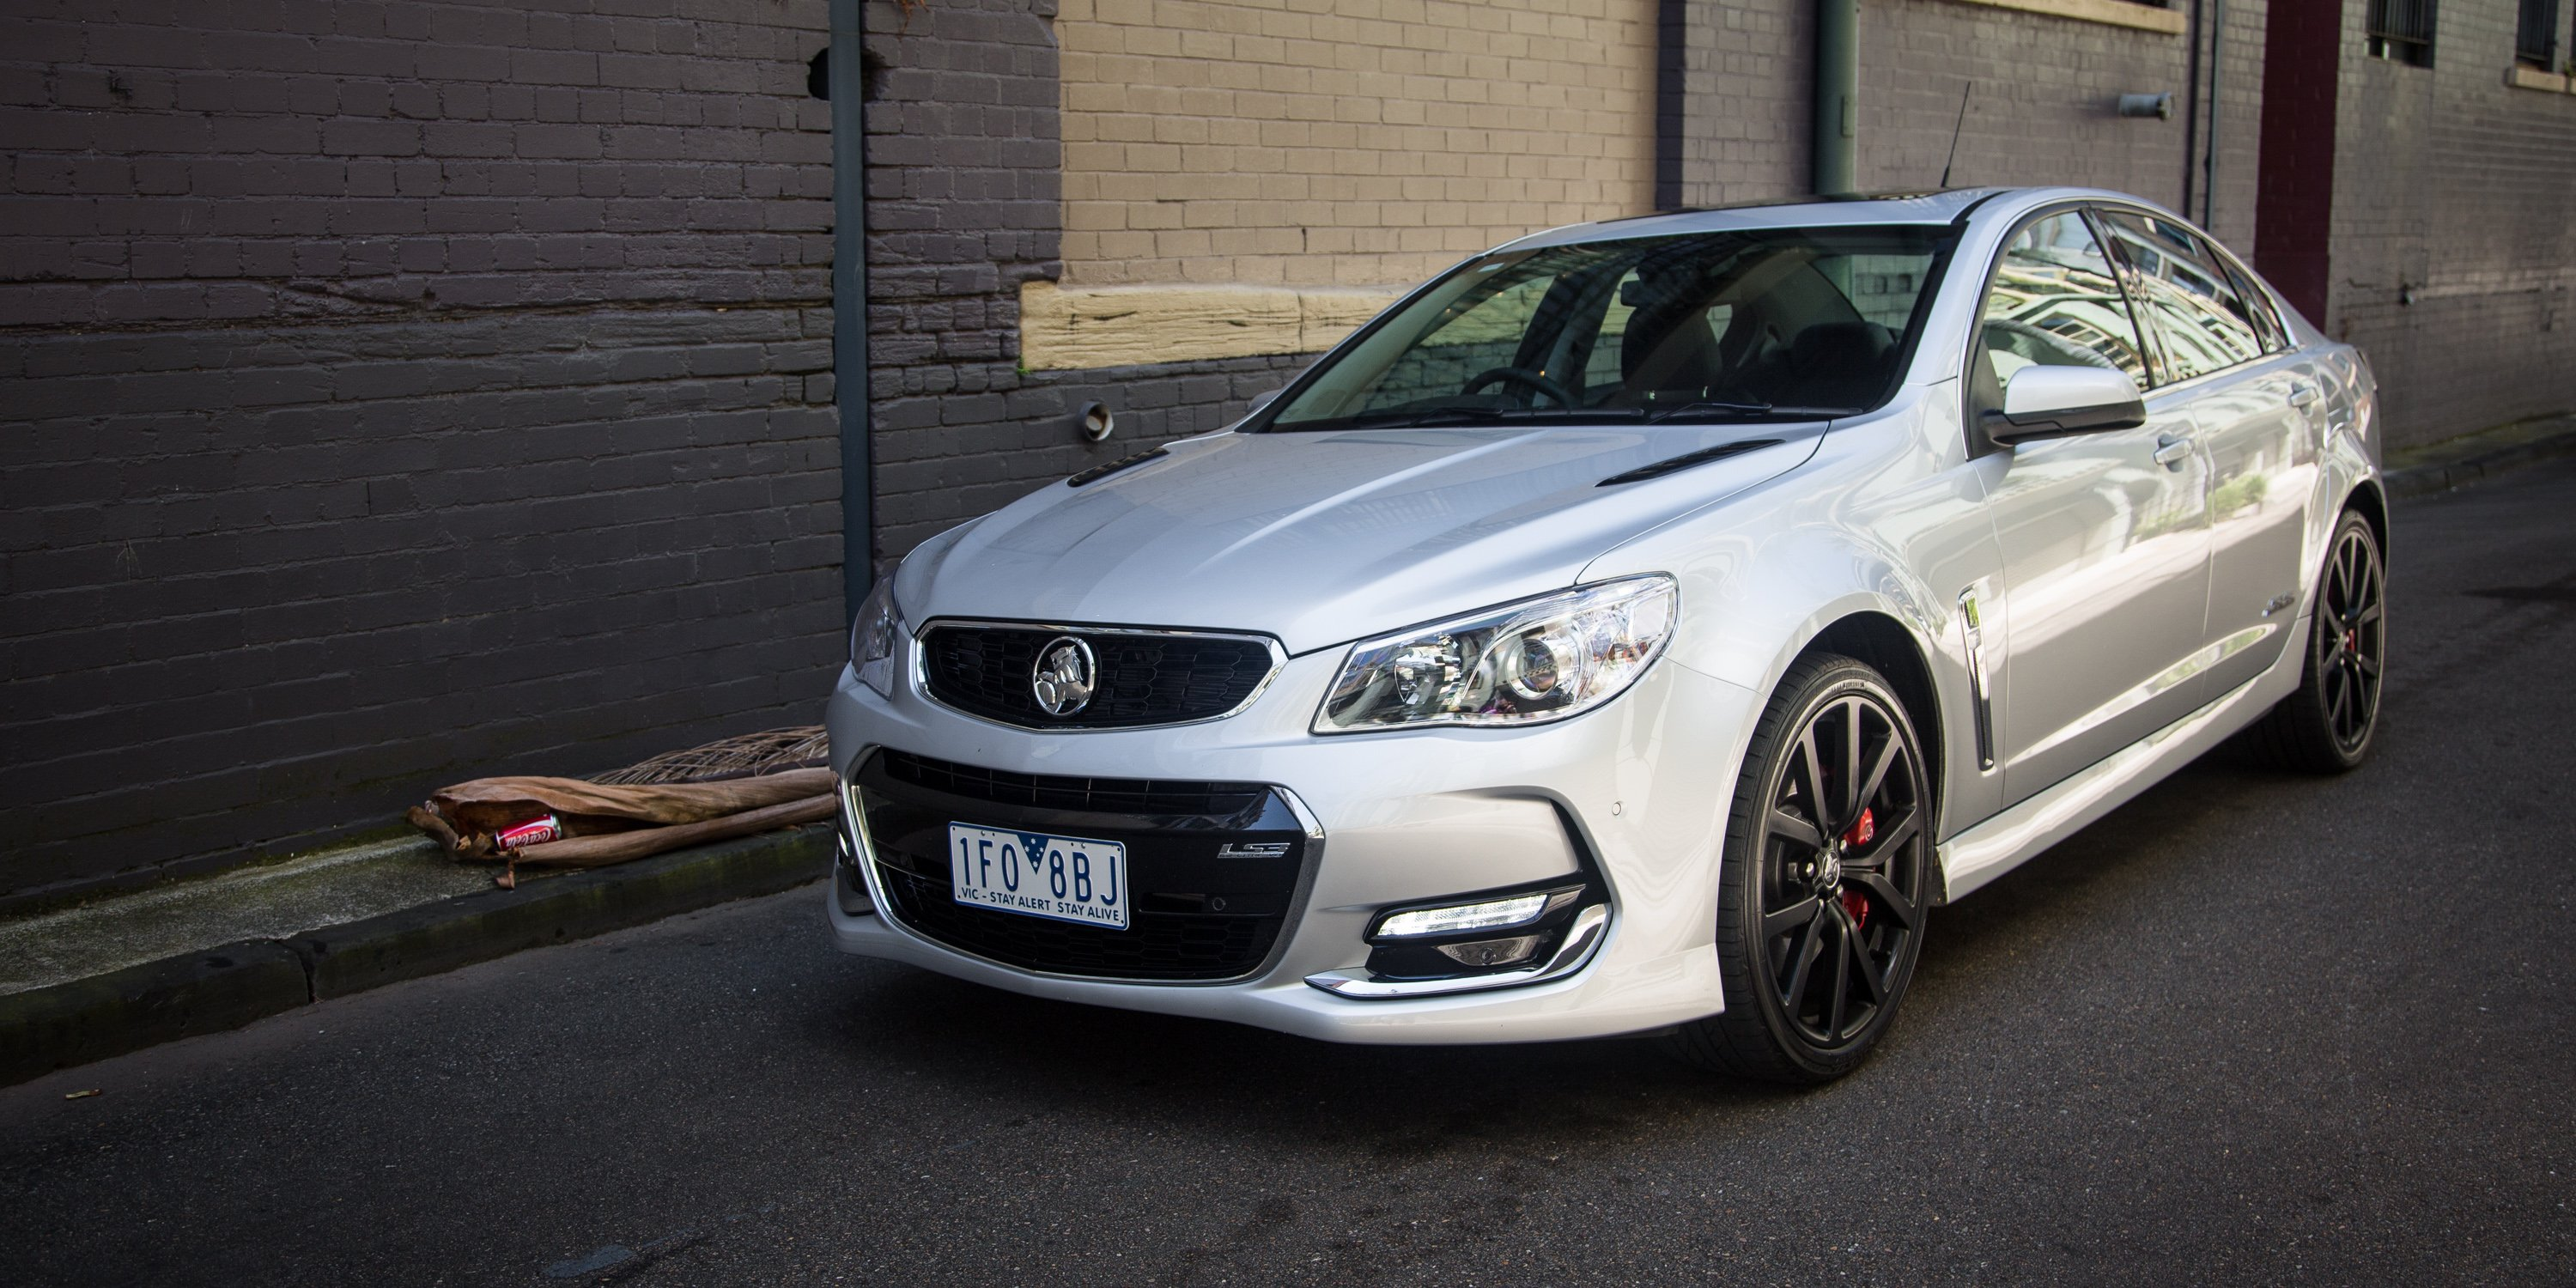 Fantastic 2016 Holden Commodore SSV Redline Review Driving The City At Night